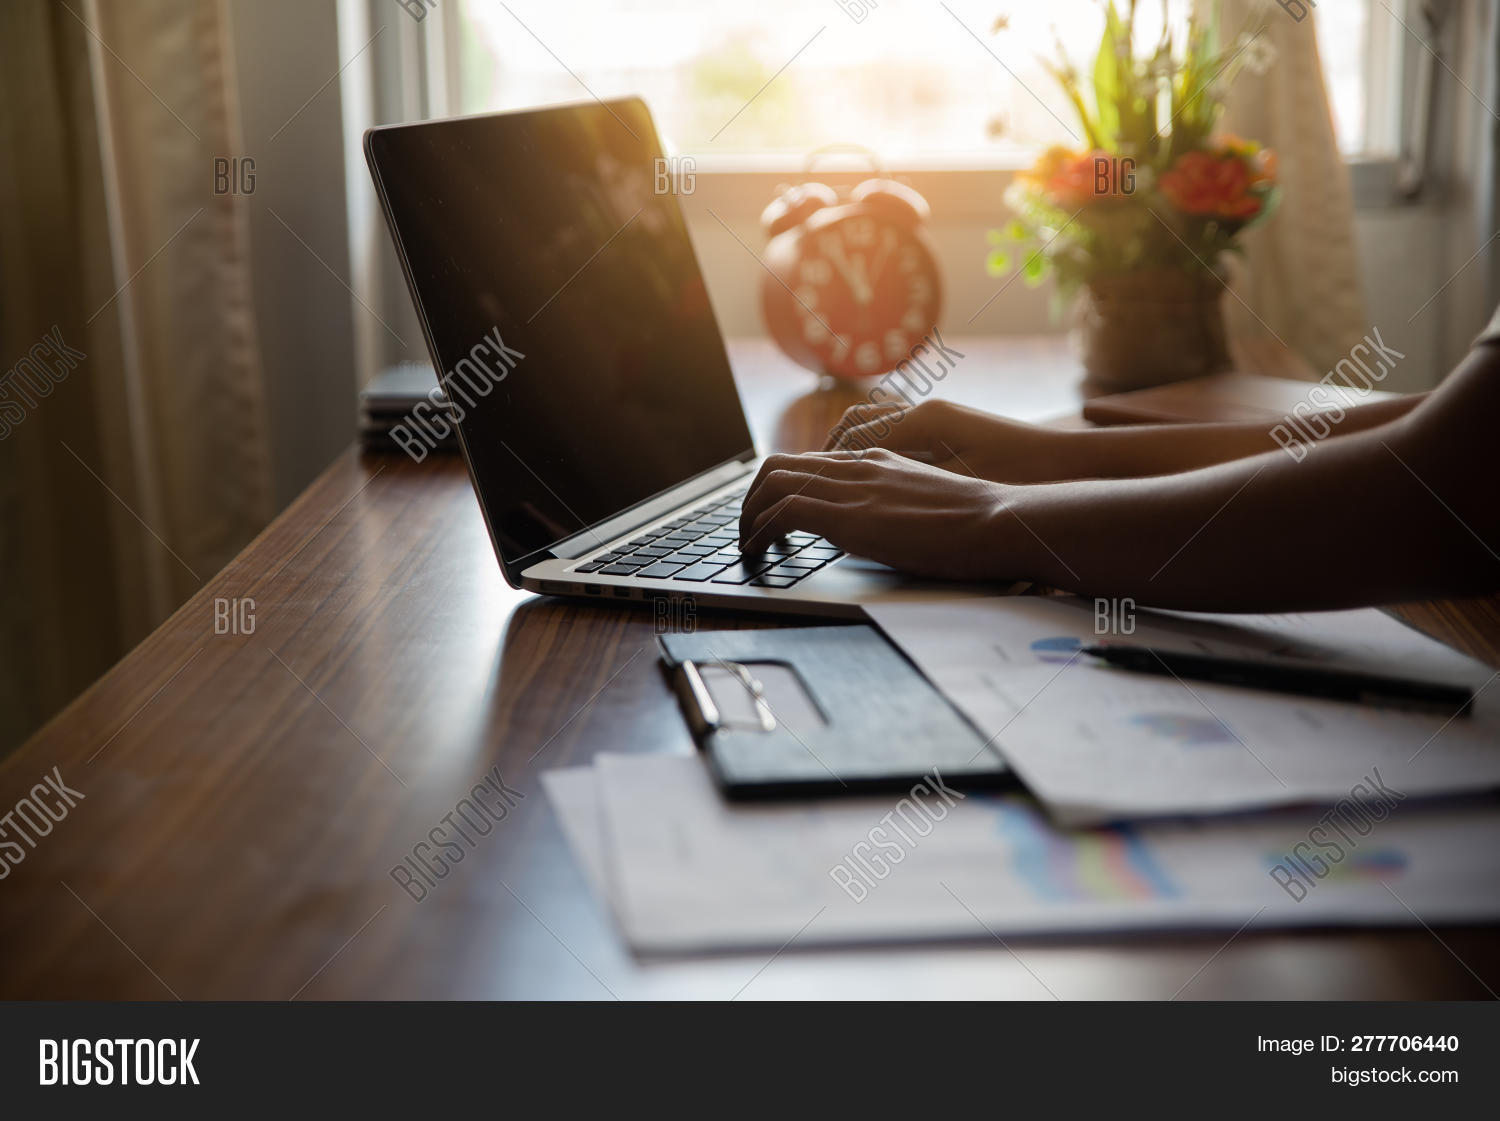 Business And Finance Concept.financial Adviser Planning And Working On Laptop,business Woman Typing